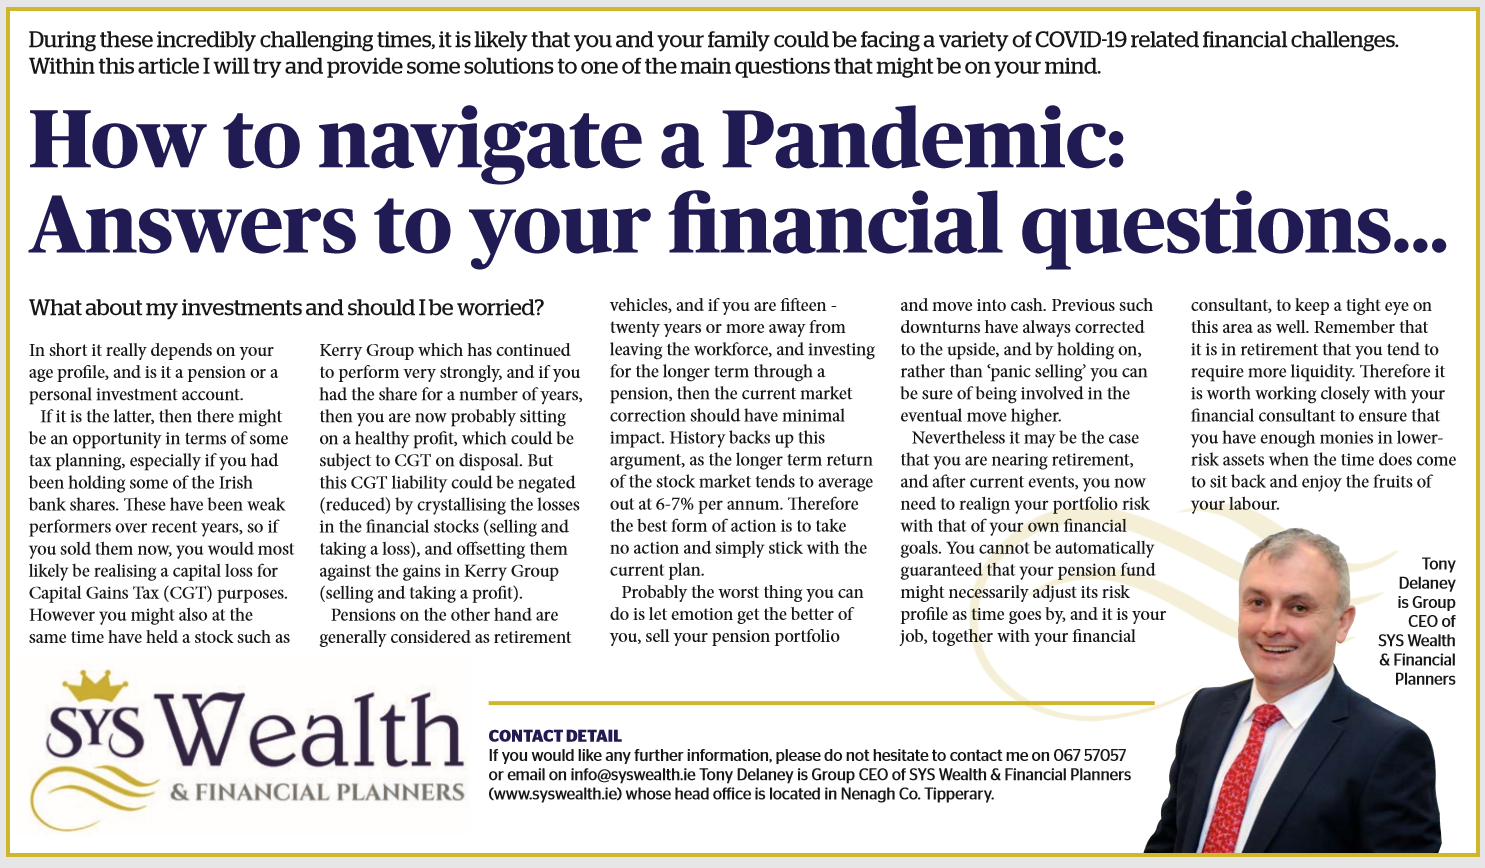 Article: What About My Investments During this Pandemic?